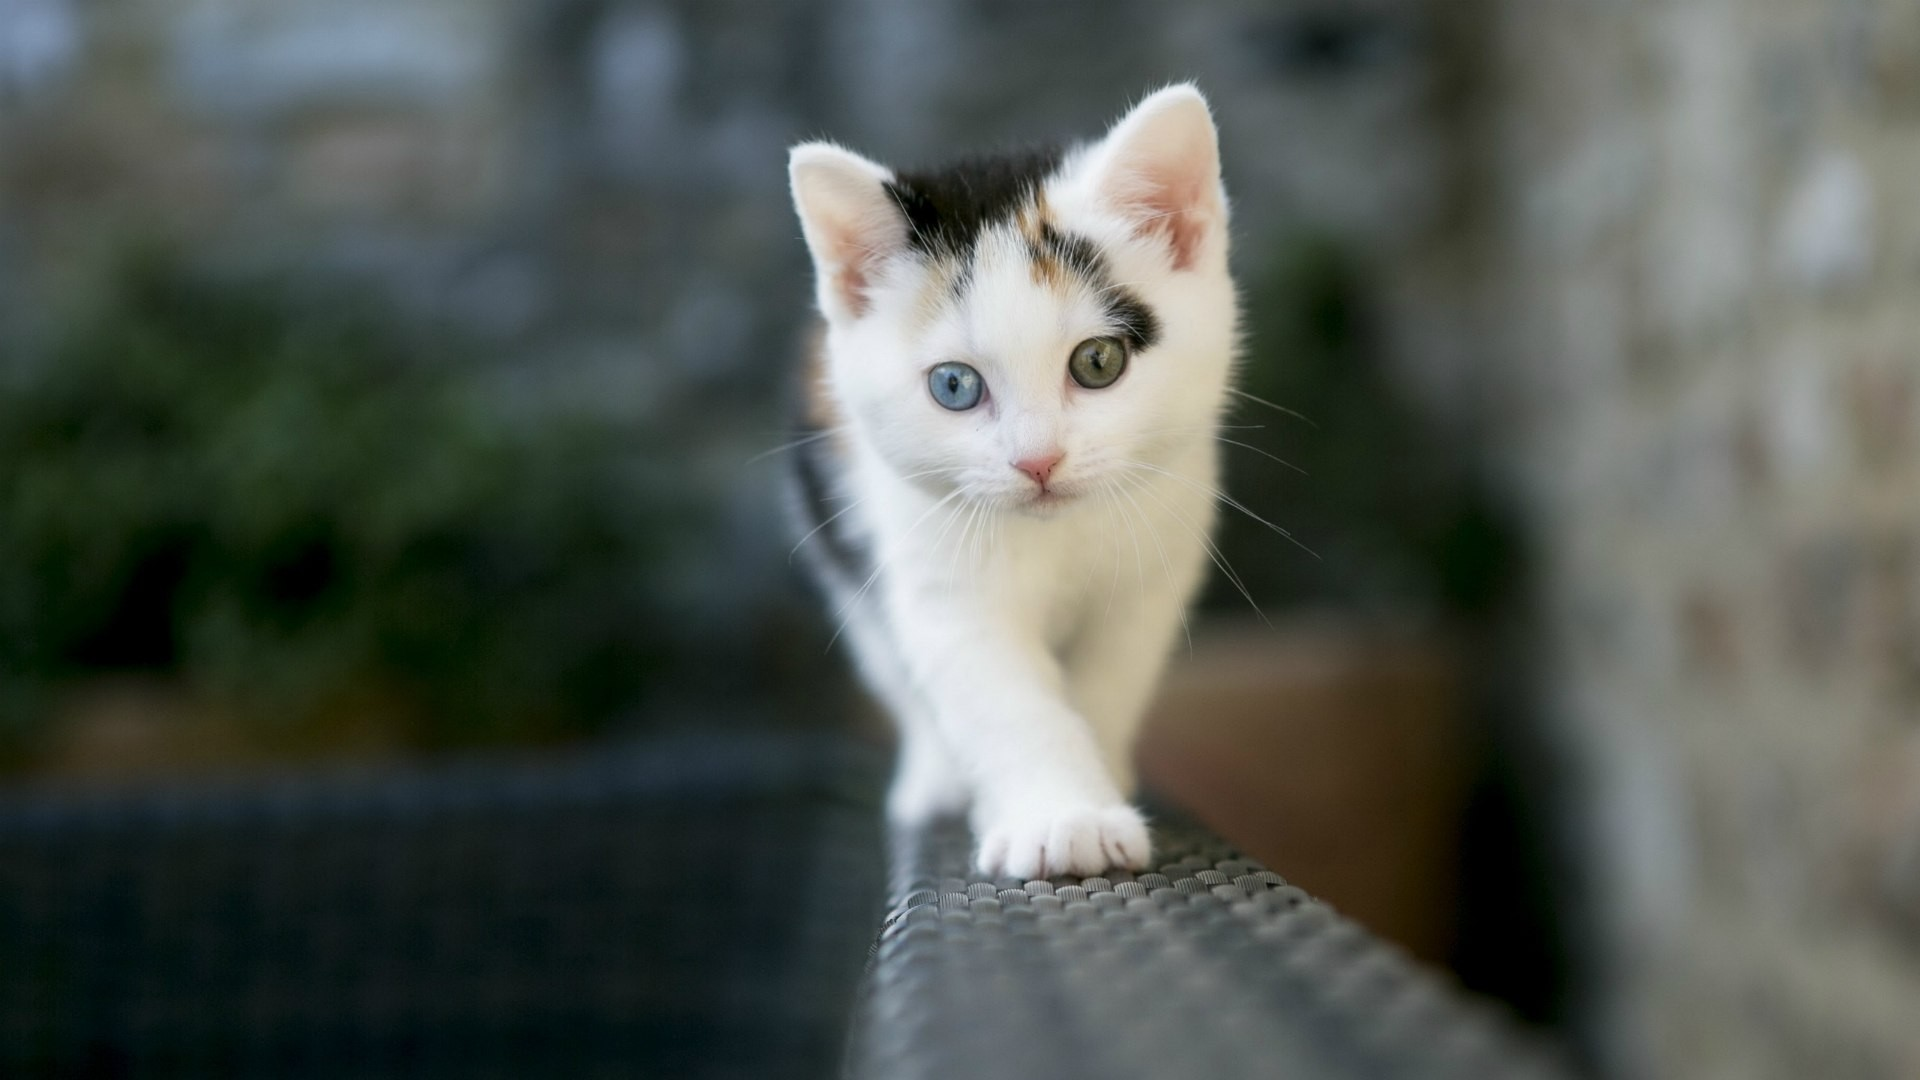 1920x1080 Cute Cat 2 Colors Eye Desktop Pc And Mac Wallpaper